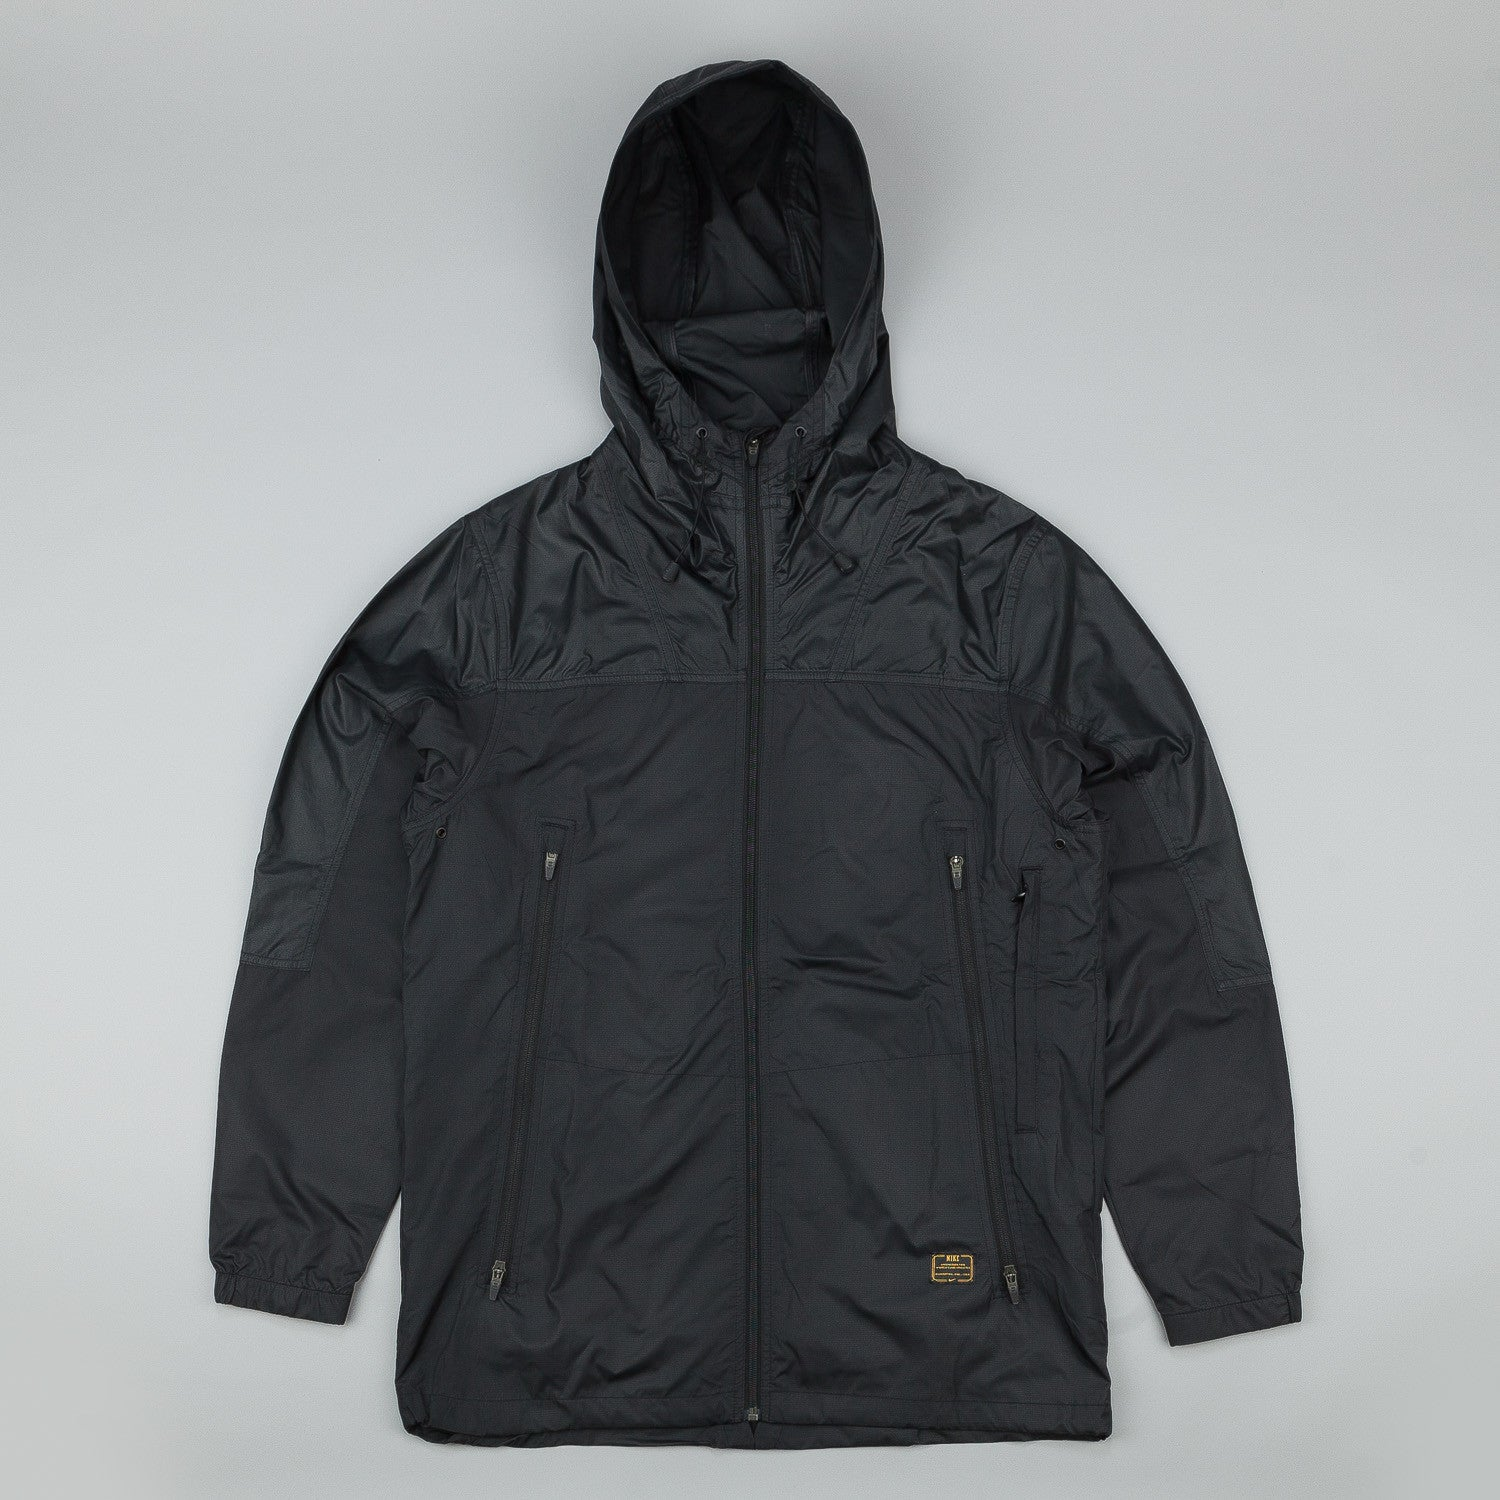 Nike SB Packable Fishtail Windbreaker Jacket